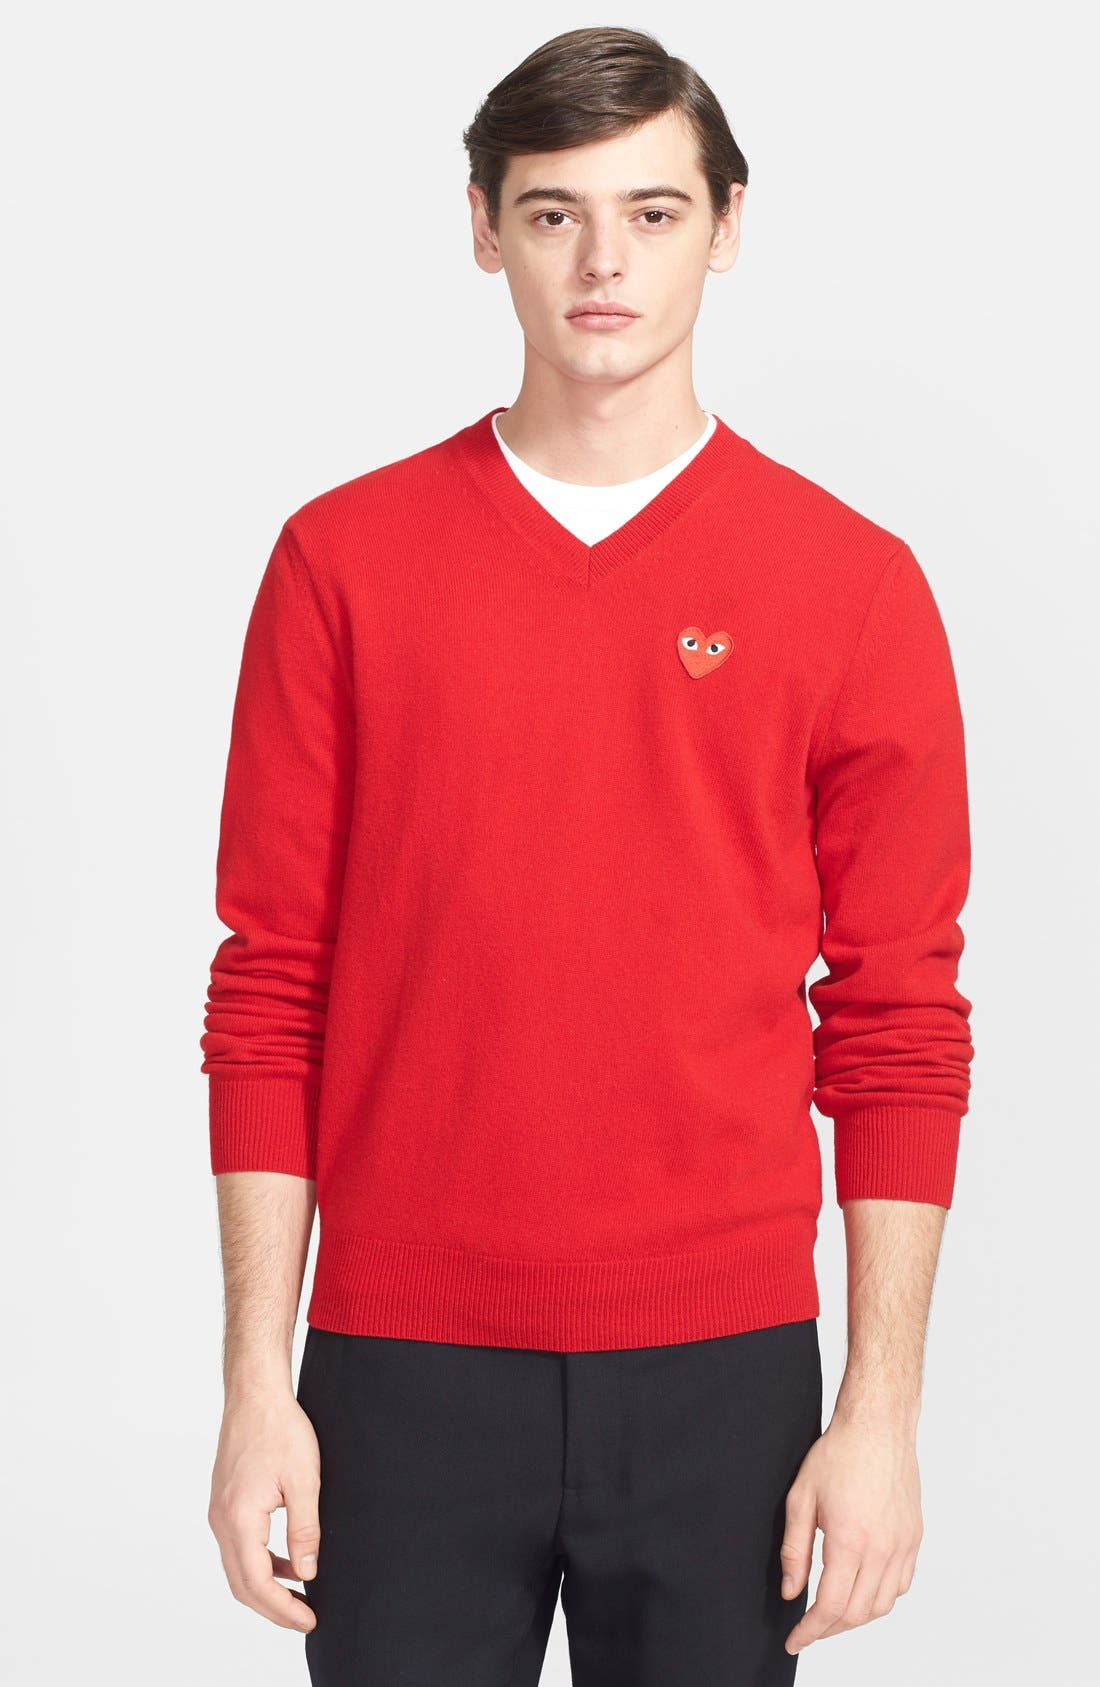 PLAY Wool Pullover,                         Main,                         color, Red